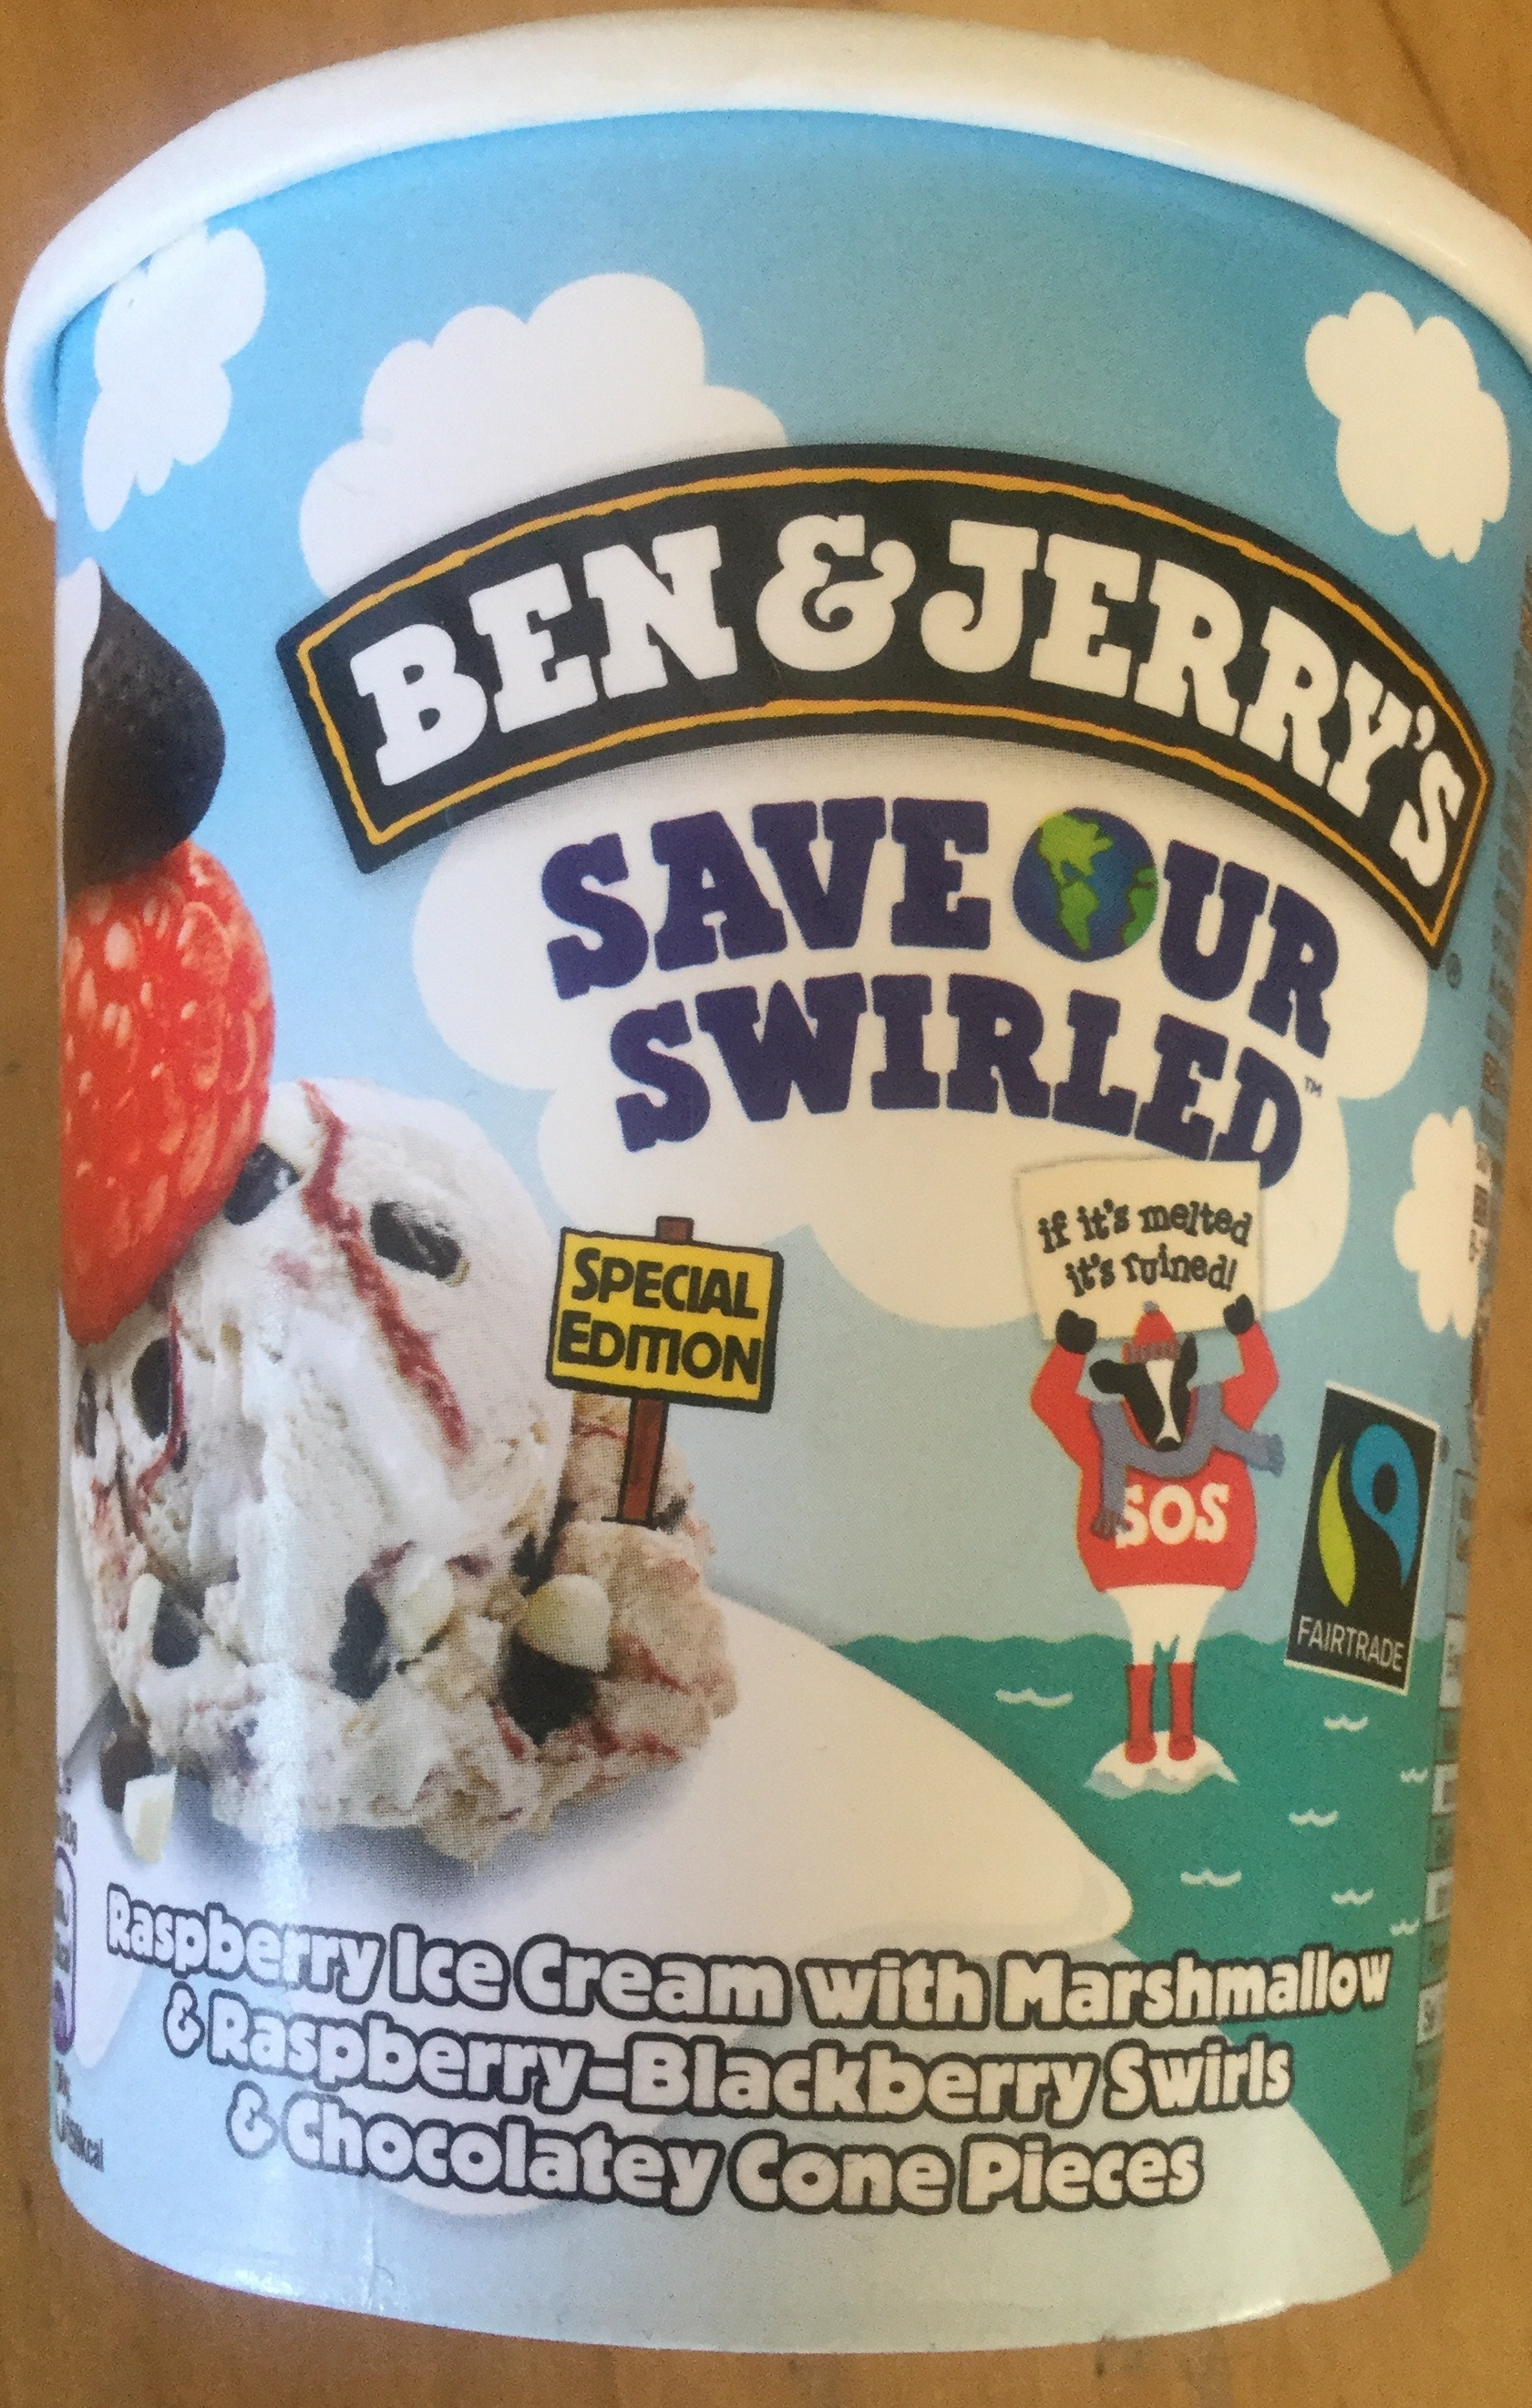 Save our swirled - Produit - fr